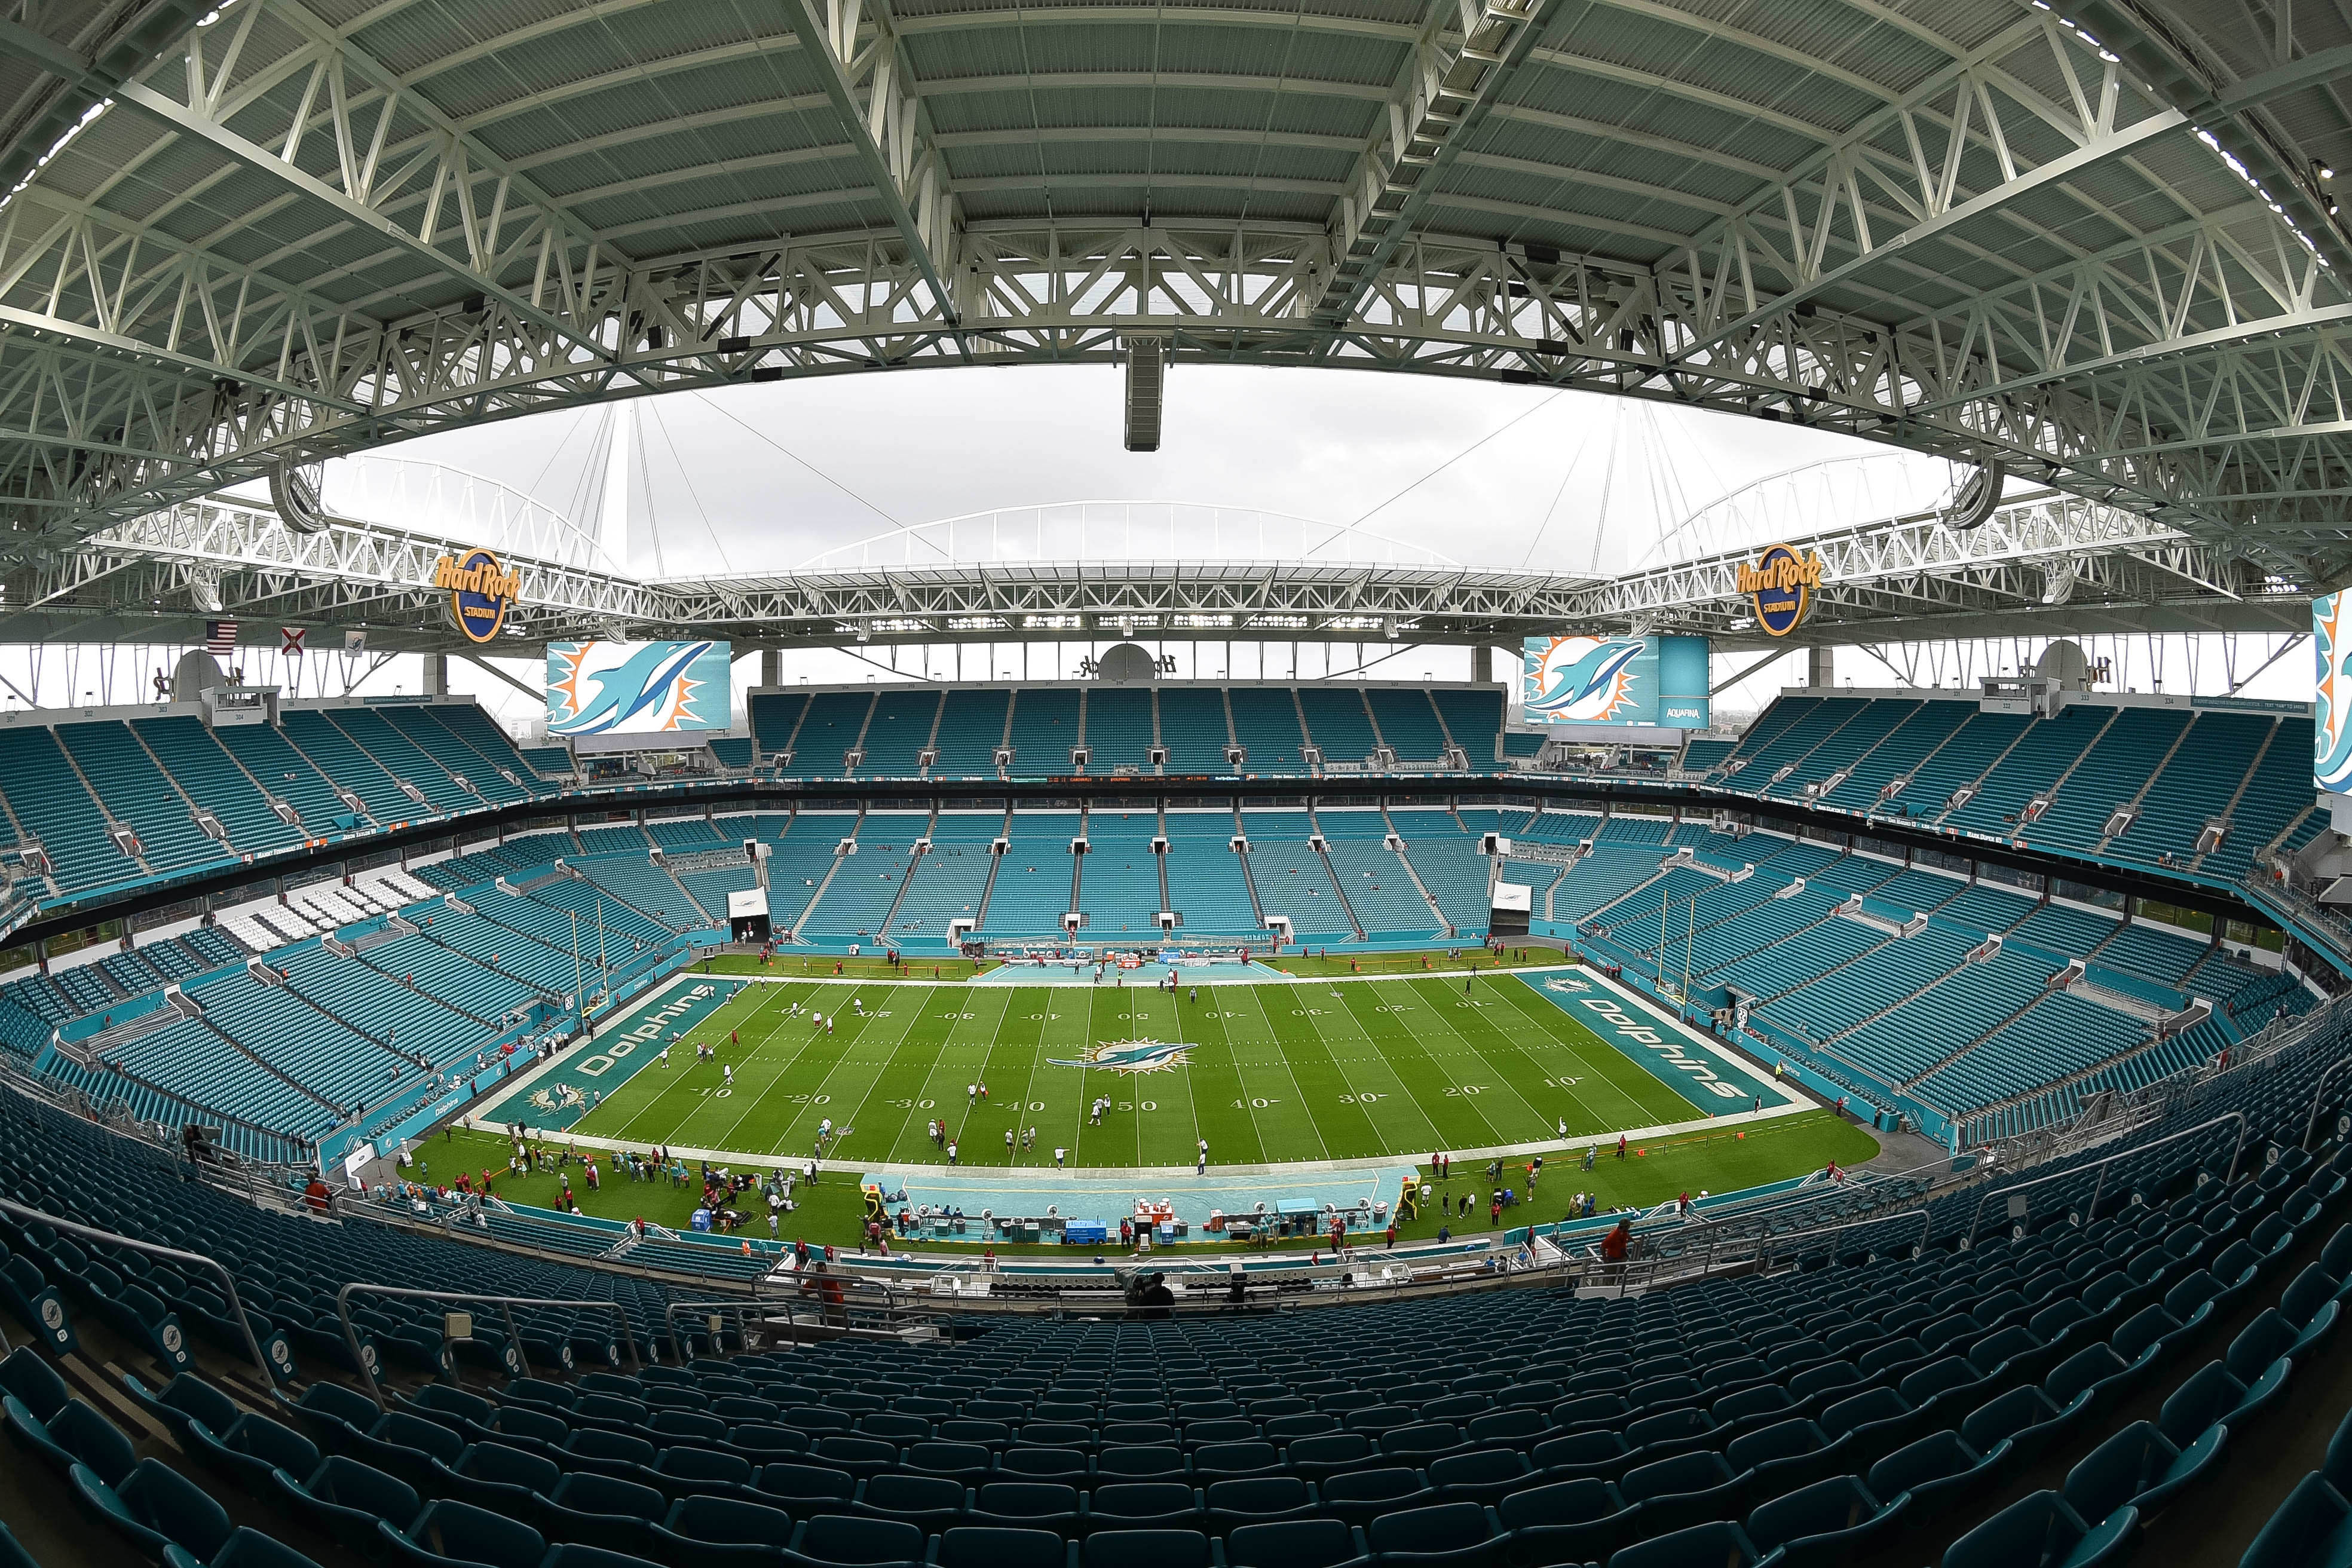 The El Classico May Be Played In Miami This Year